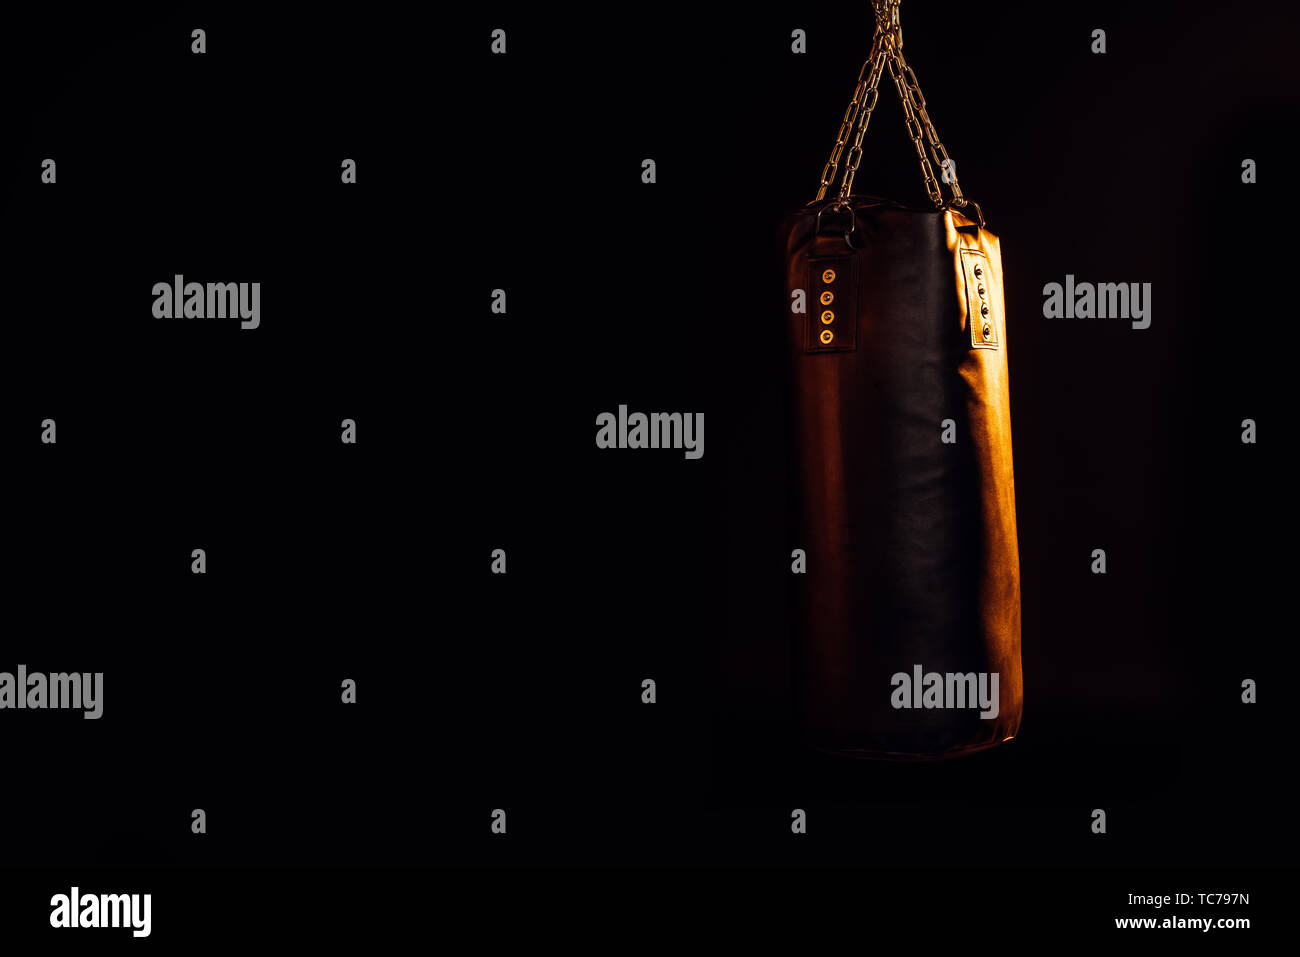 Leather punching bag hanging on steel chains isolated on black - Stock Image